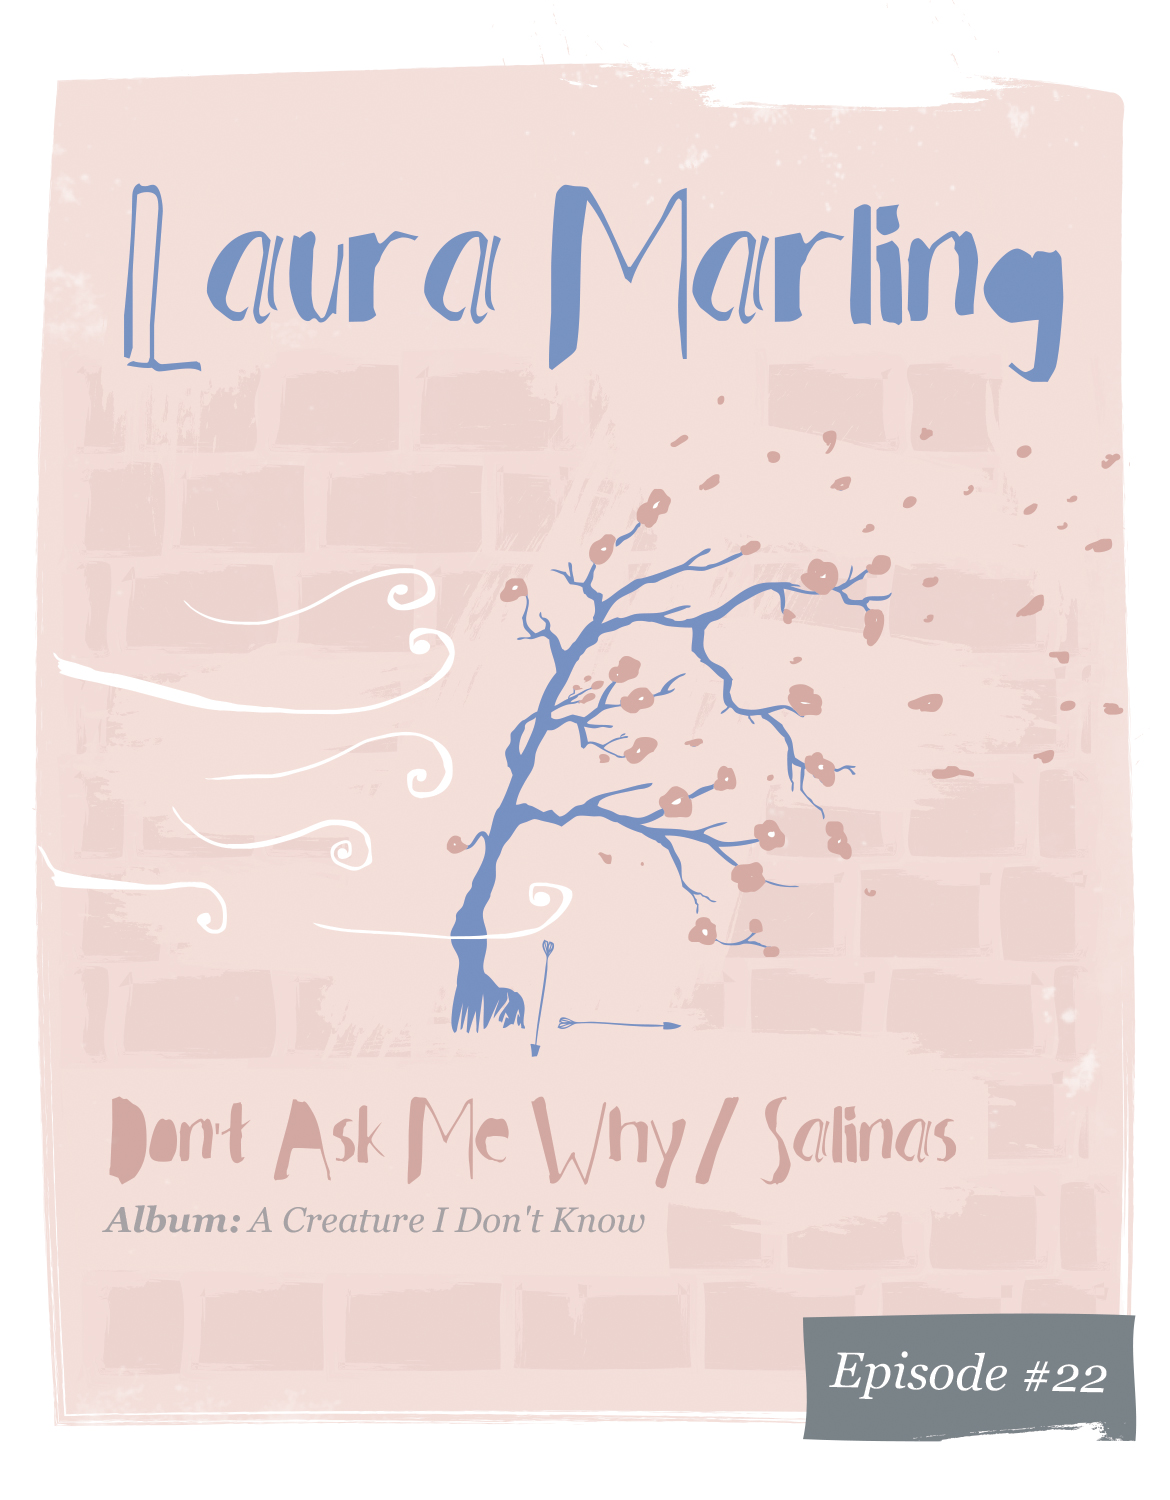 lauramarling_postcard